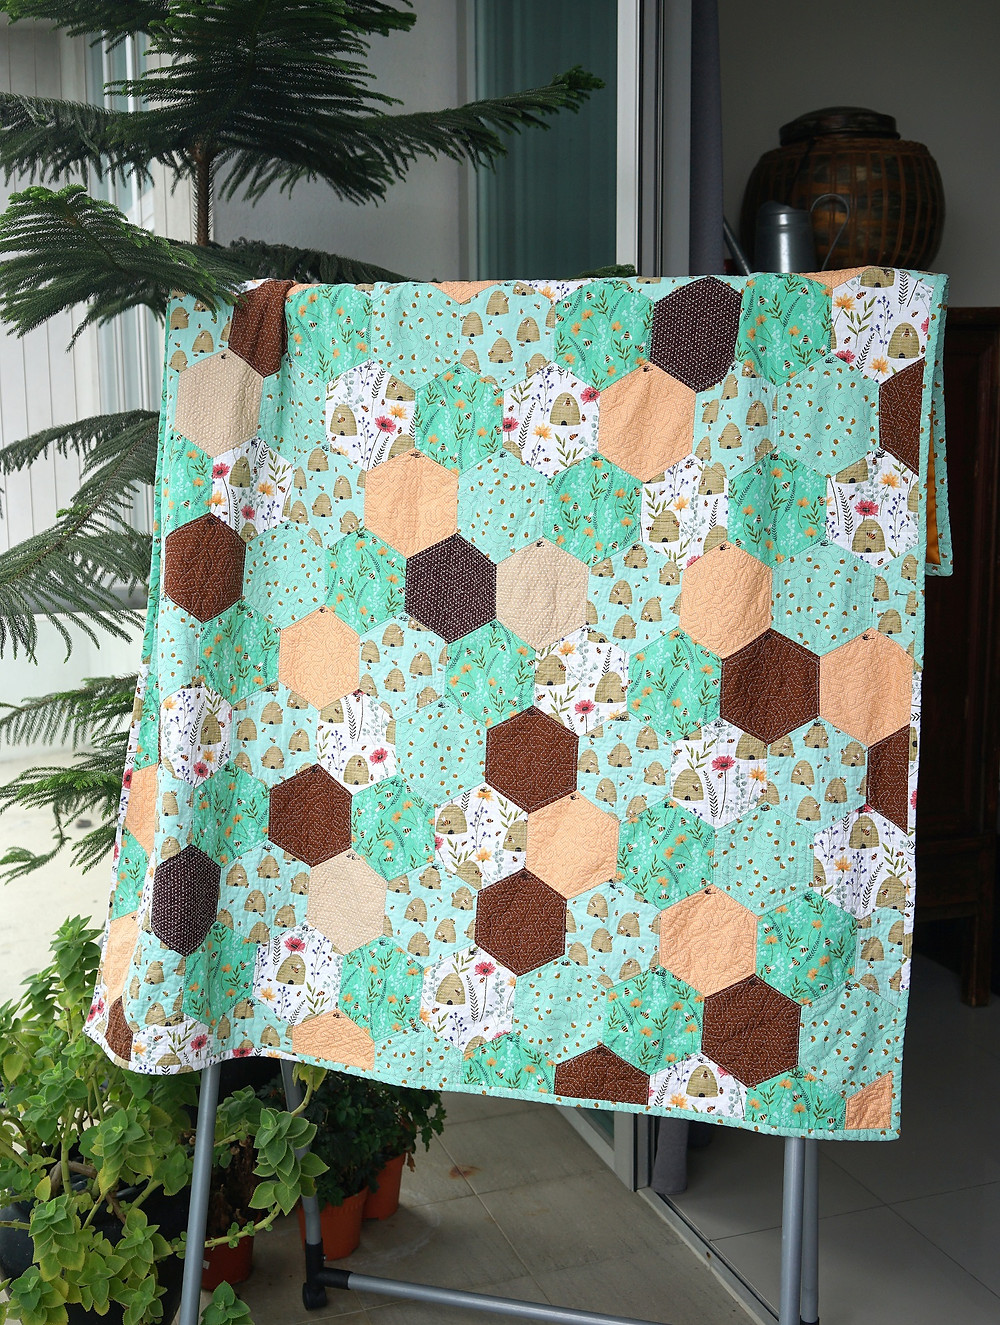 Honeycomb hexagon quilt hanging on display QAYG machine sewn green and brown